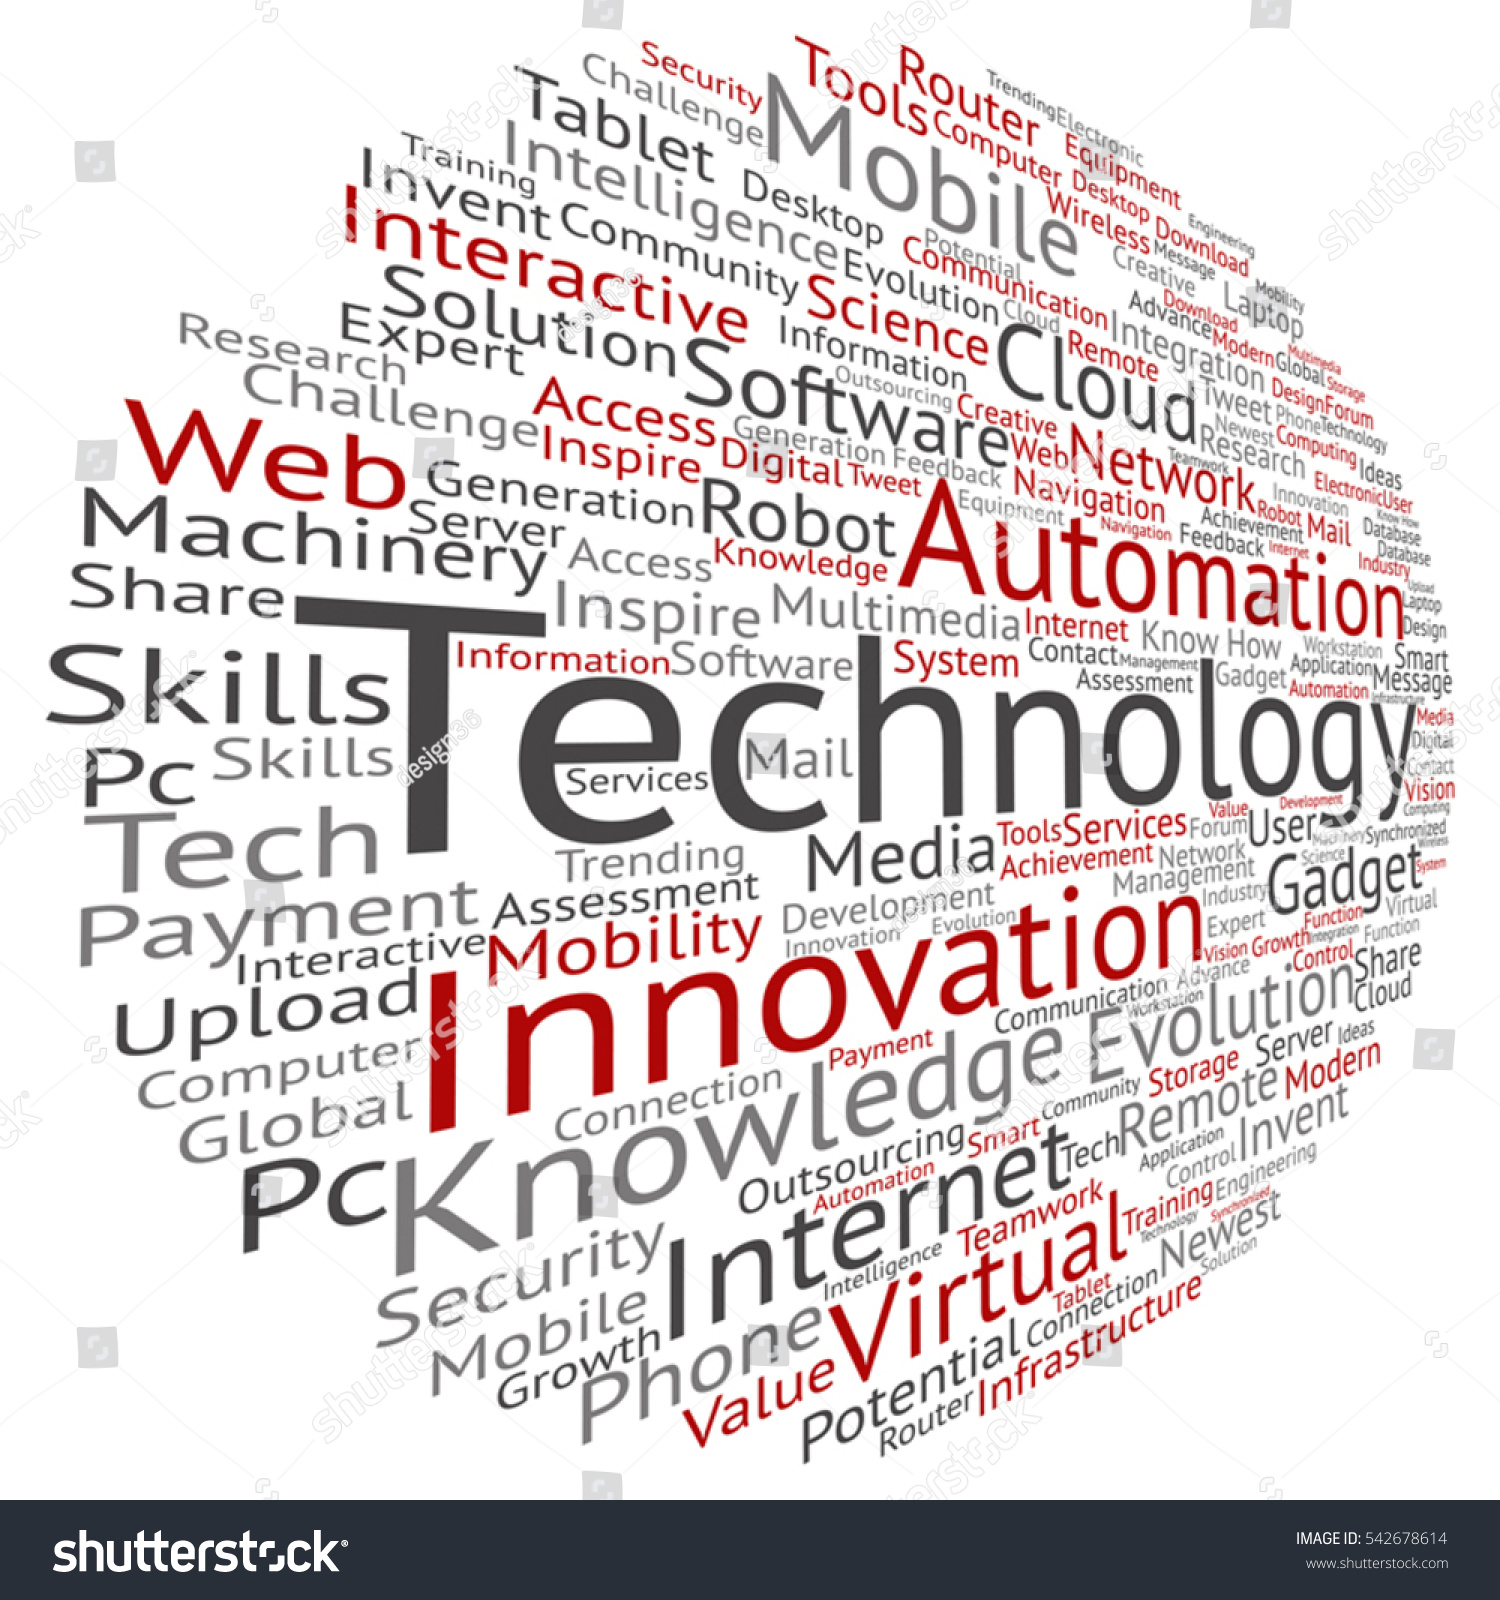 a scientific research paper on technological advancement and the development of modern pc The effects of technology in society and education  the growth of the personal computer  but rather the computer and the advancement of technology contains grand.